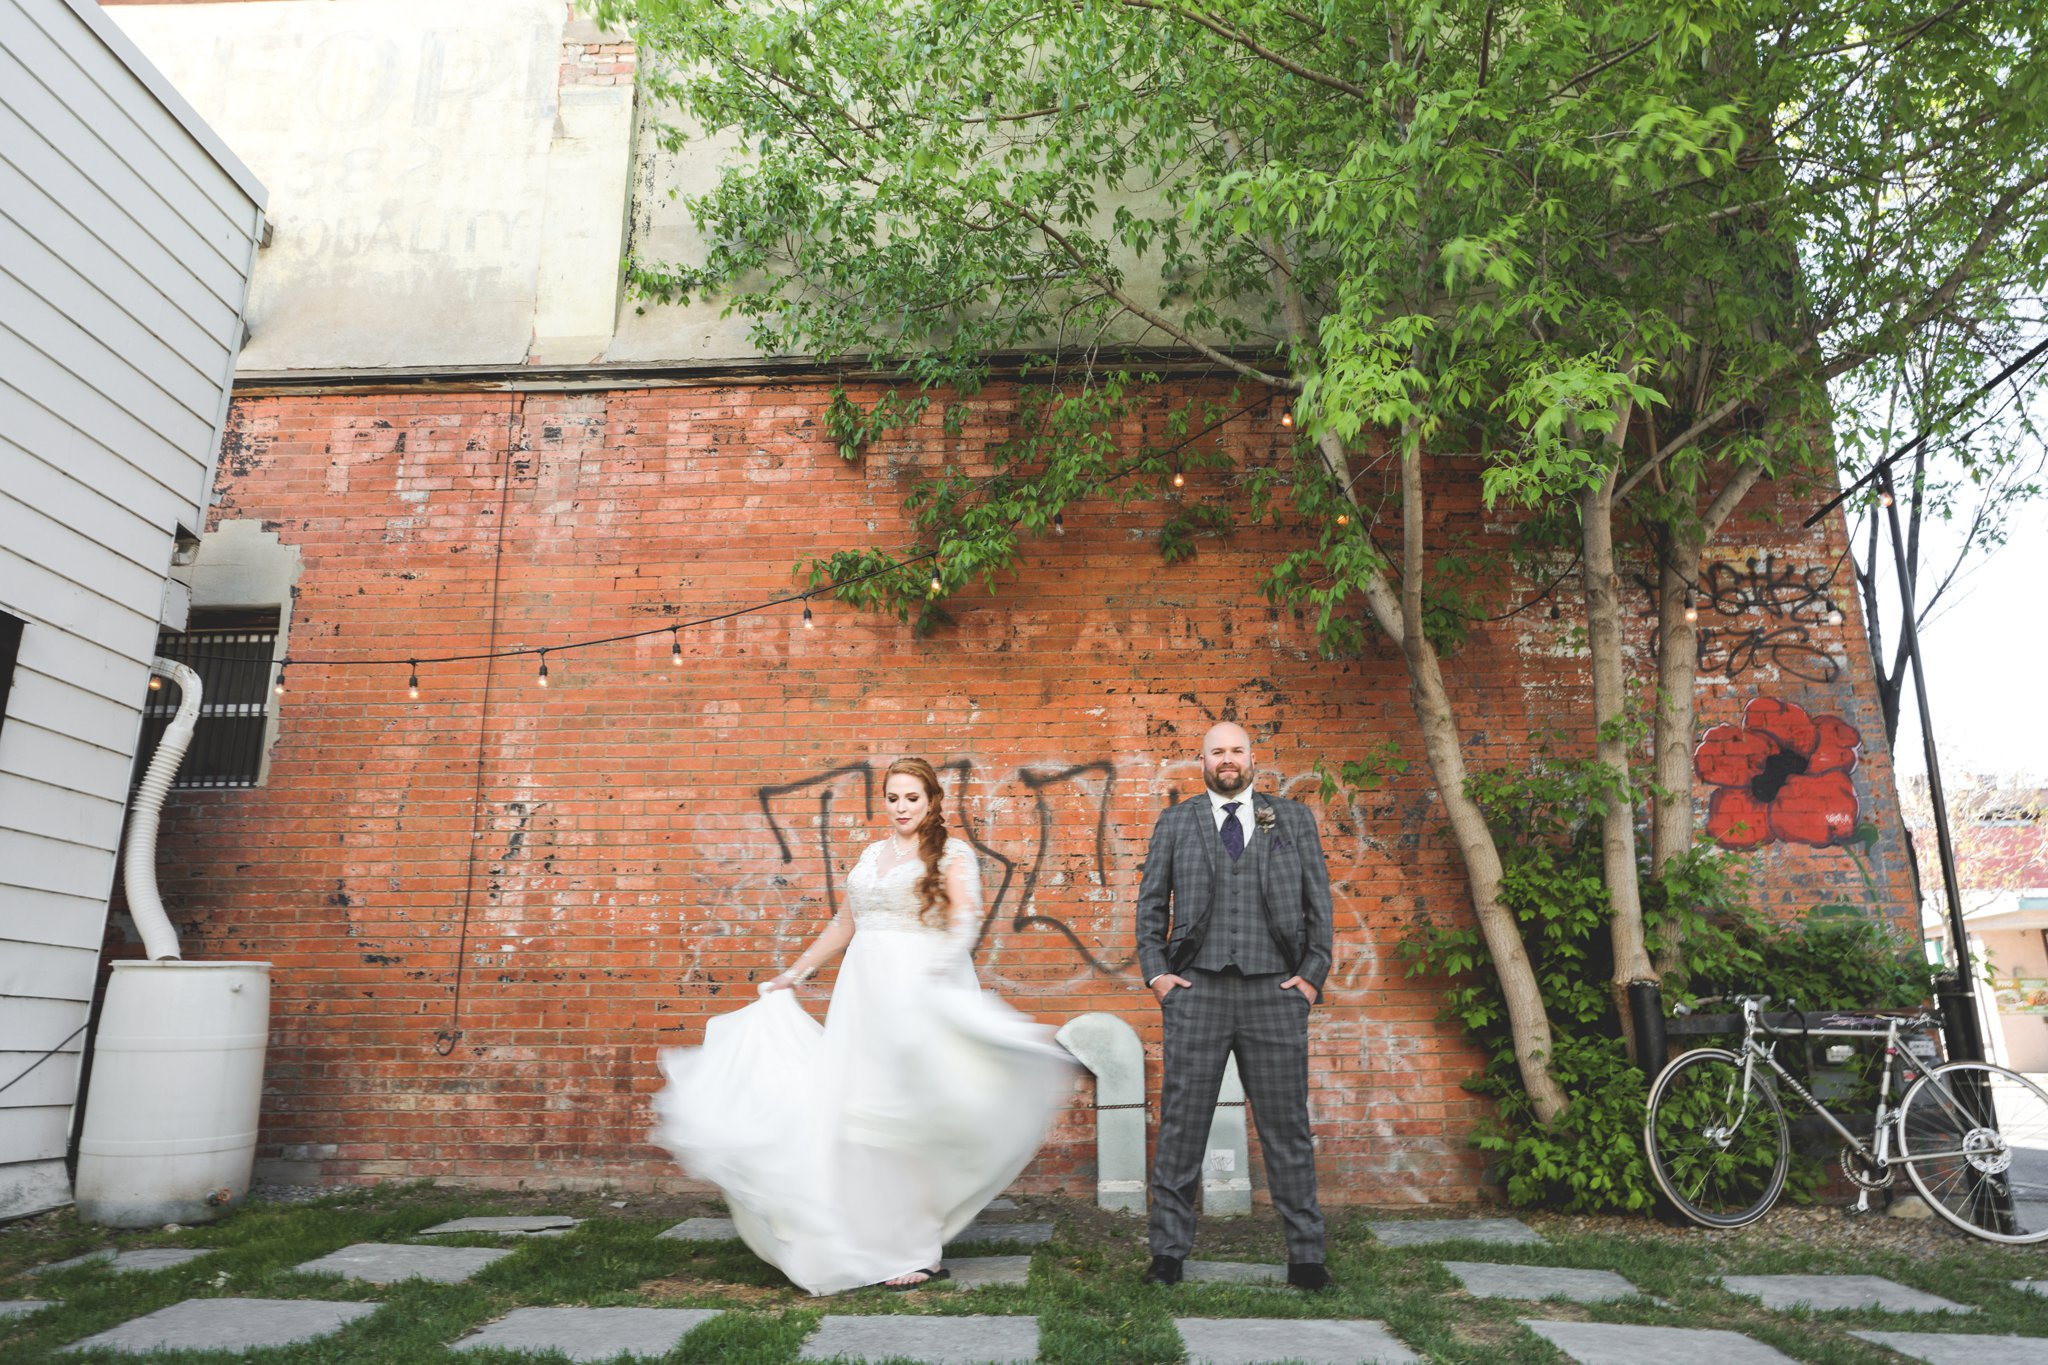 AshleyDaphnePhotography Calgary Wedding Photographer Rouge Inglewood Bride Groom Photography_0105.jpg